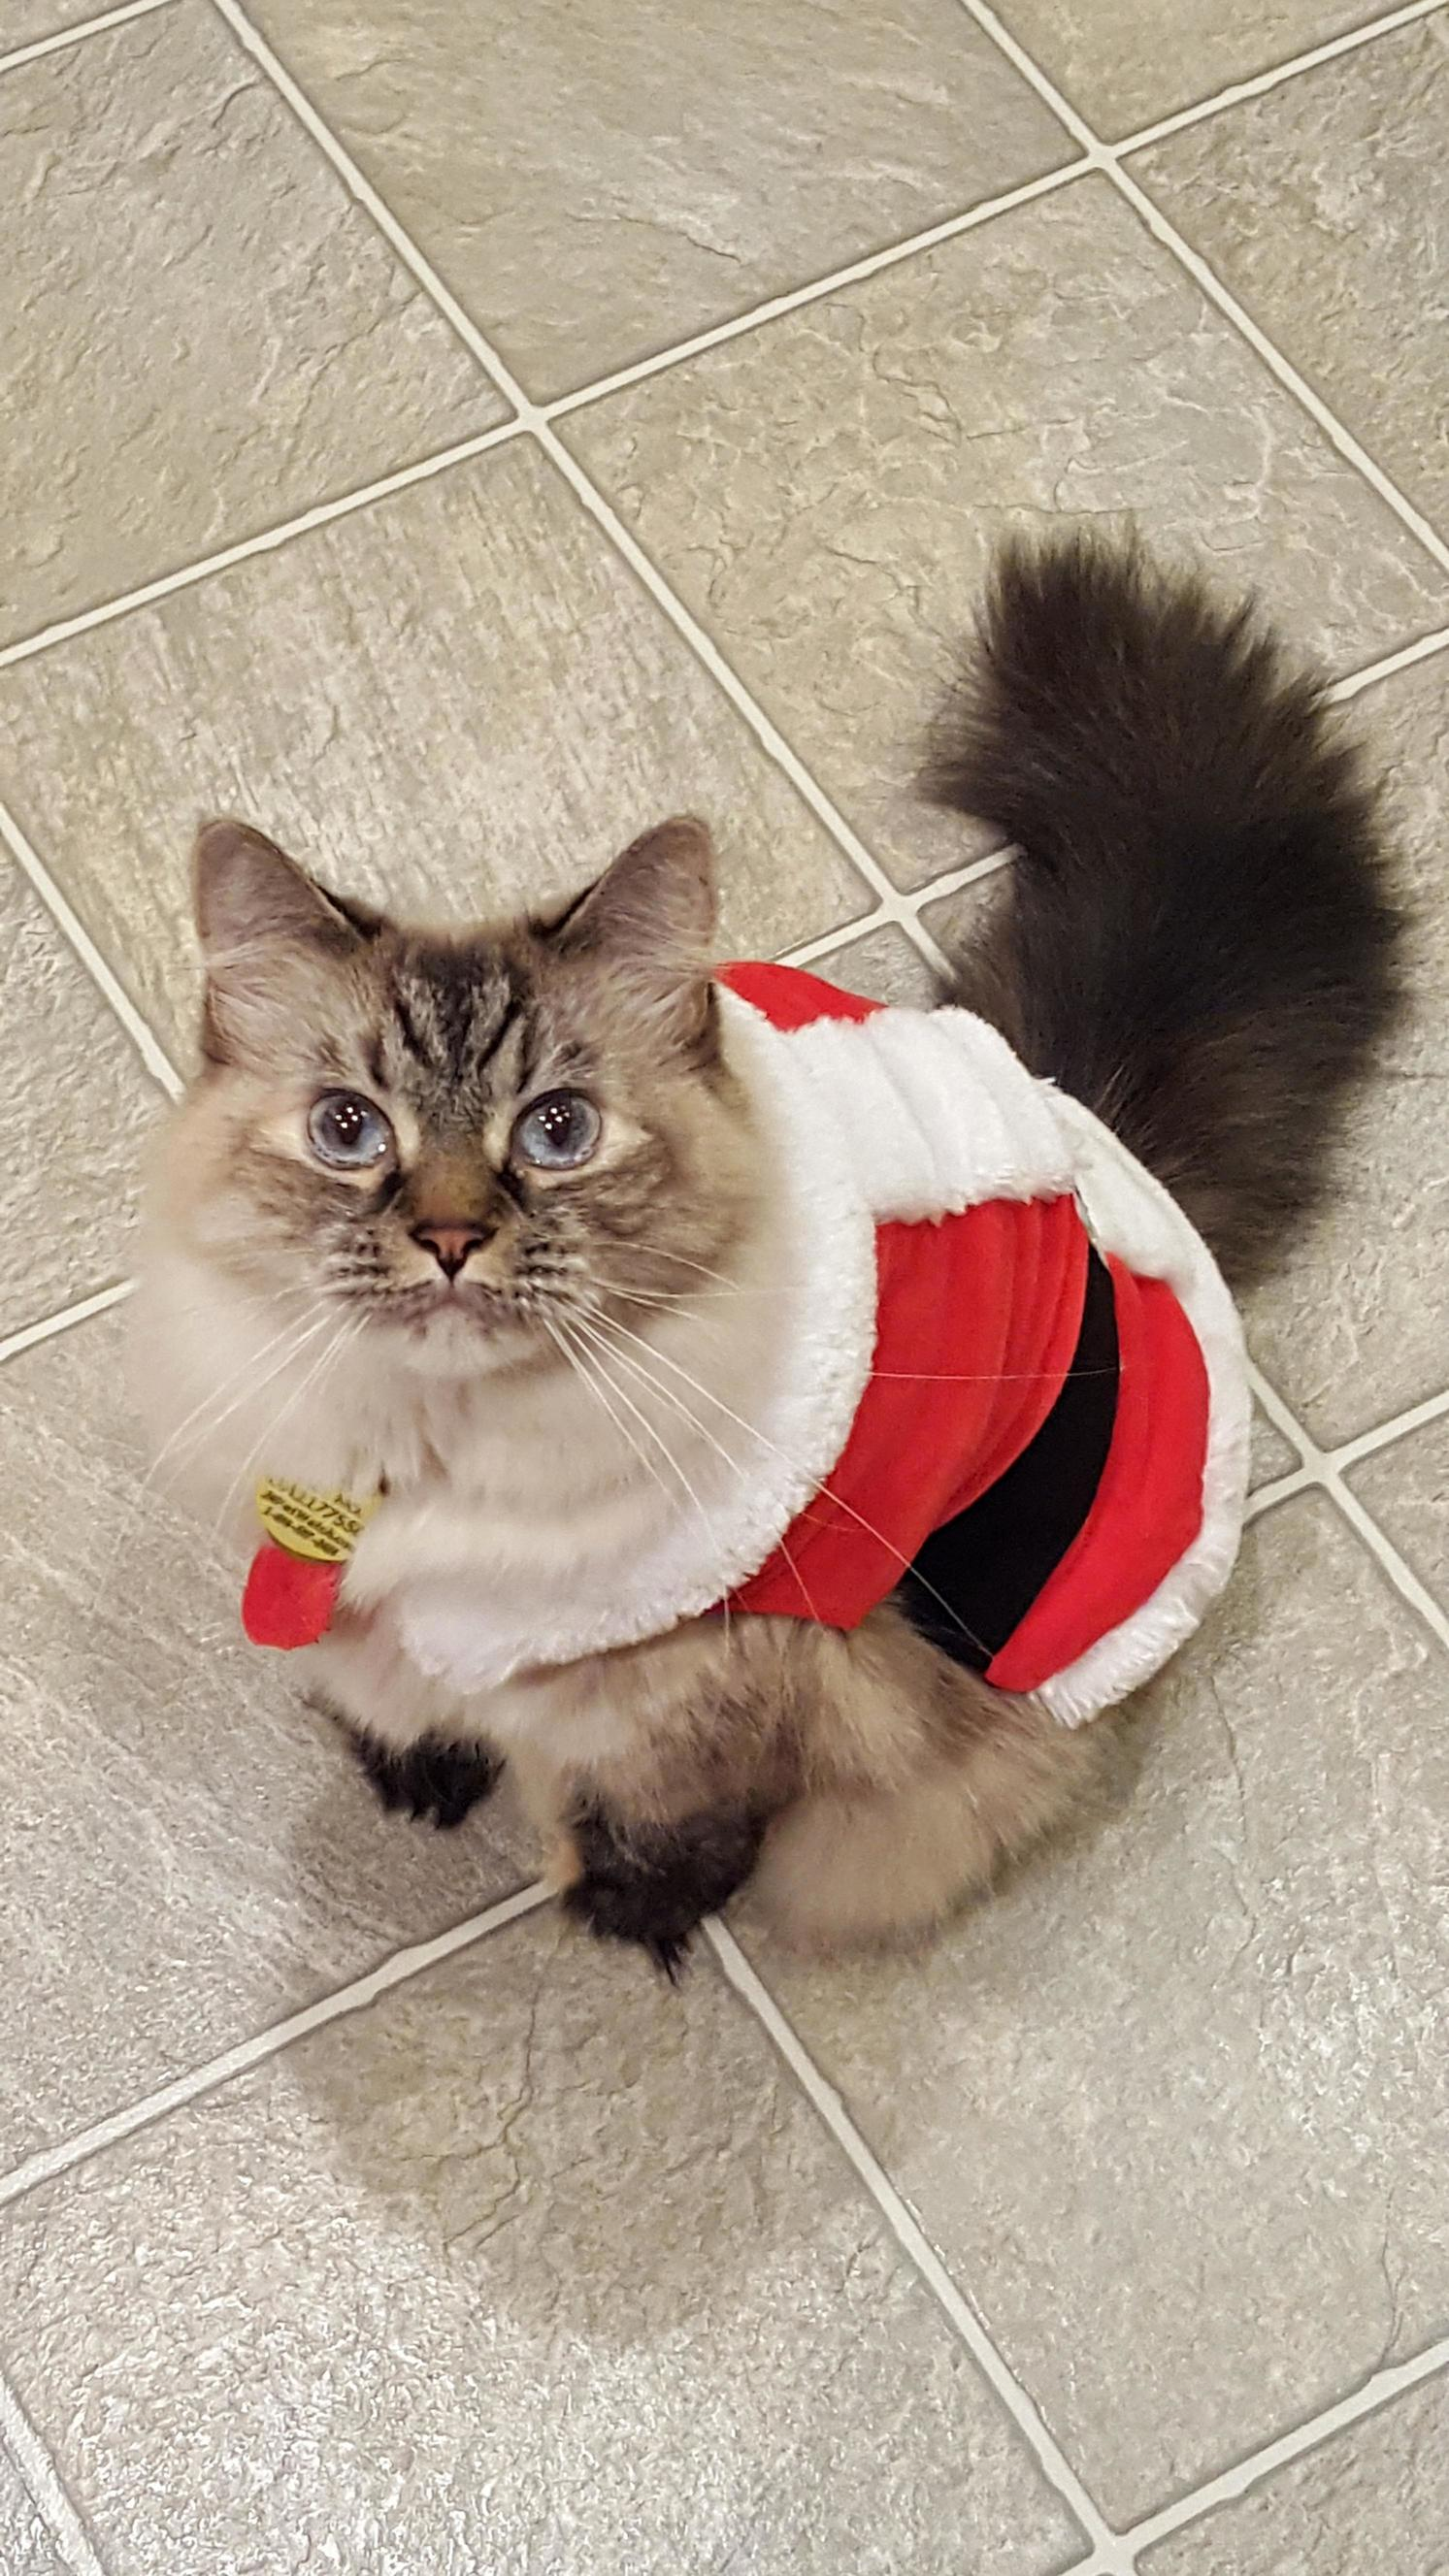 This is dr hawking she looks cute af in her santa outfit